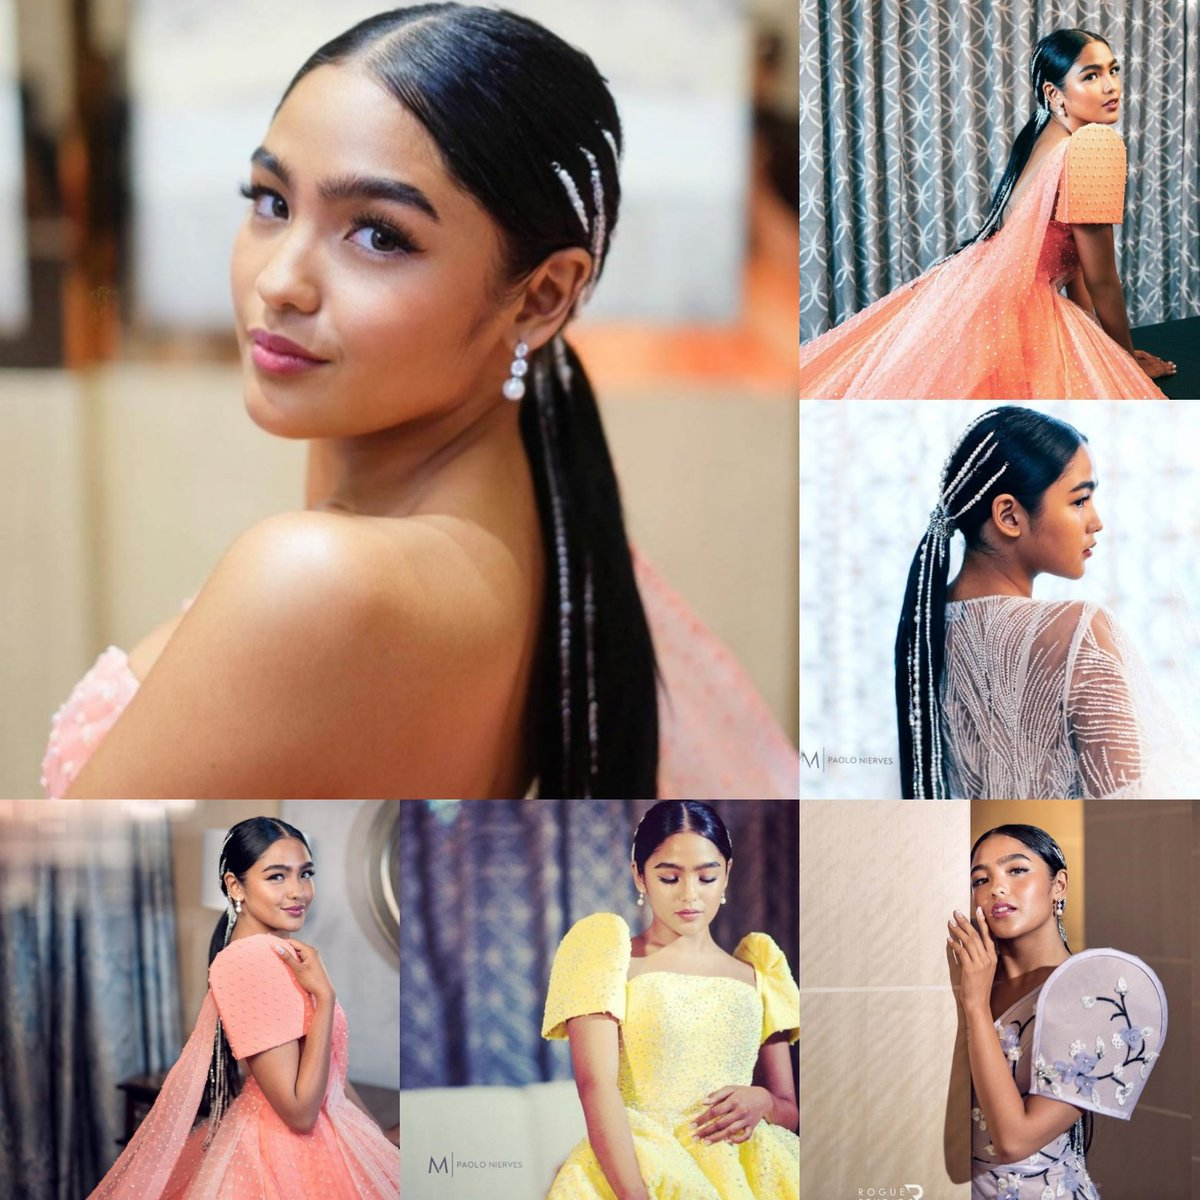 Ms. #AndreaBrillantes at the ABS CBN Ball 2019  #PearlOfTheOrient  #CoralGown #BelleoftheBall #MichaelLeyva #EldzMejia #MarbenTalanay #JojoBragais #RJDelaCruz #Apartment8